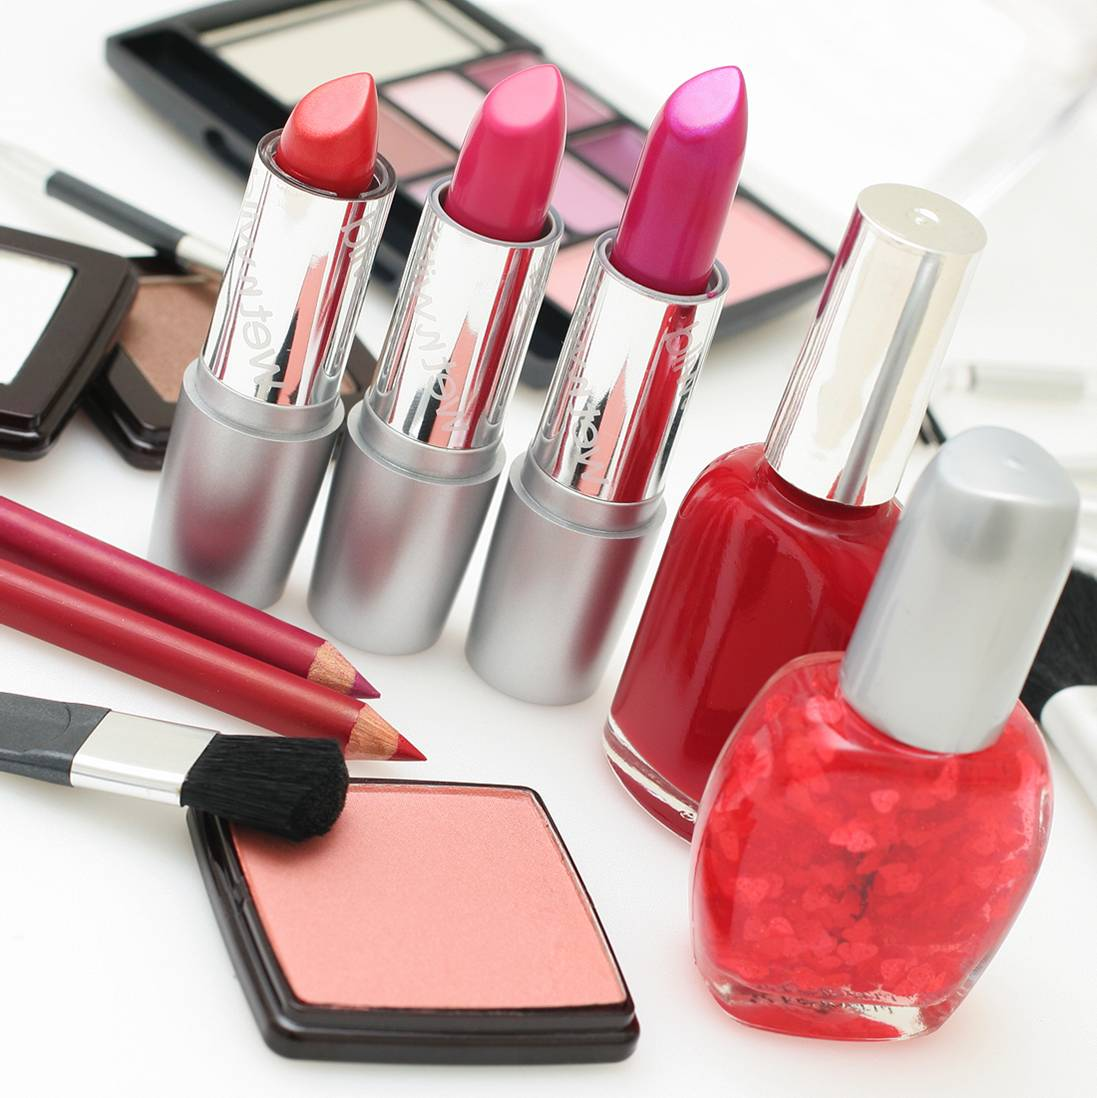 cosmetics online stores in Portugal